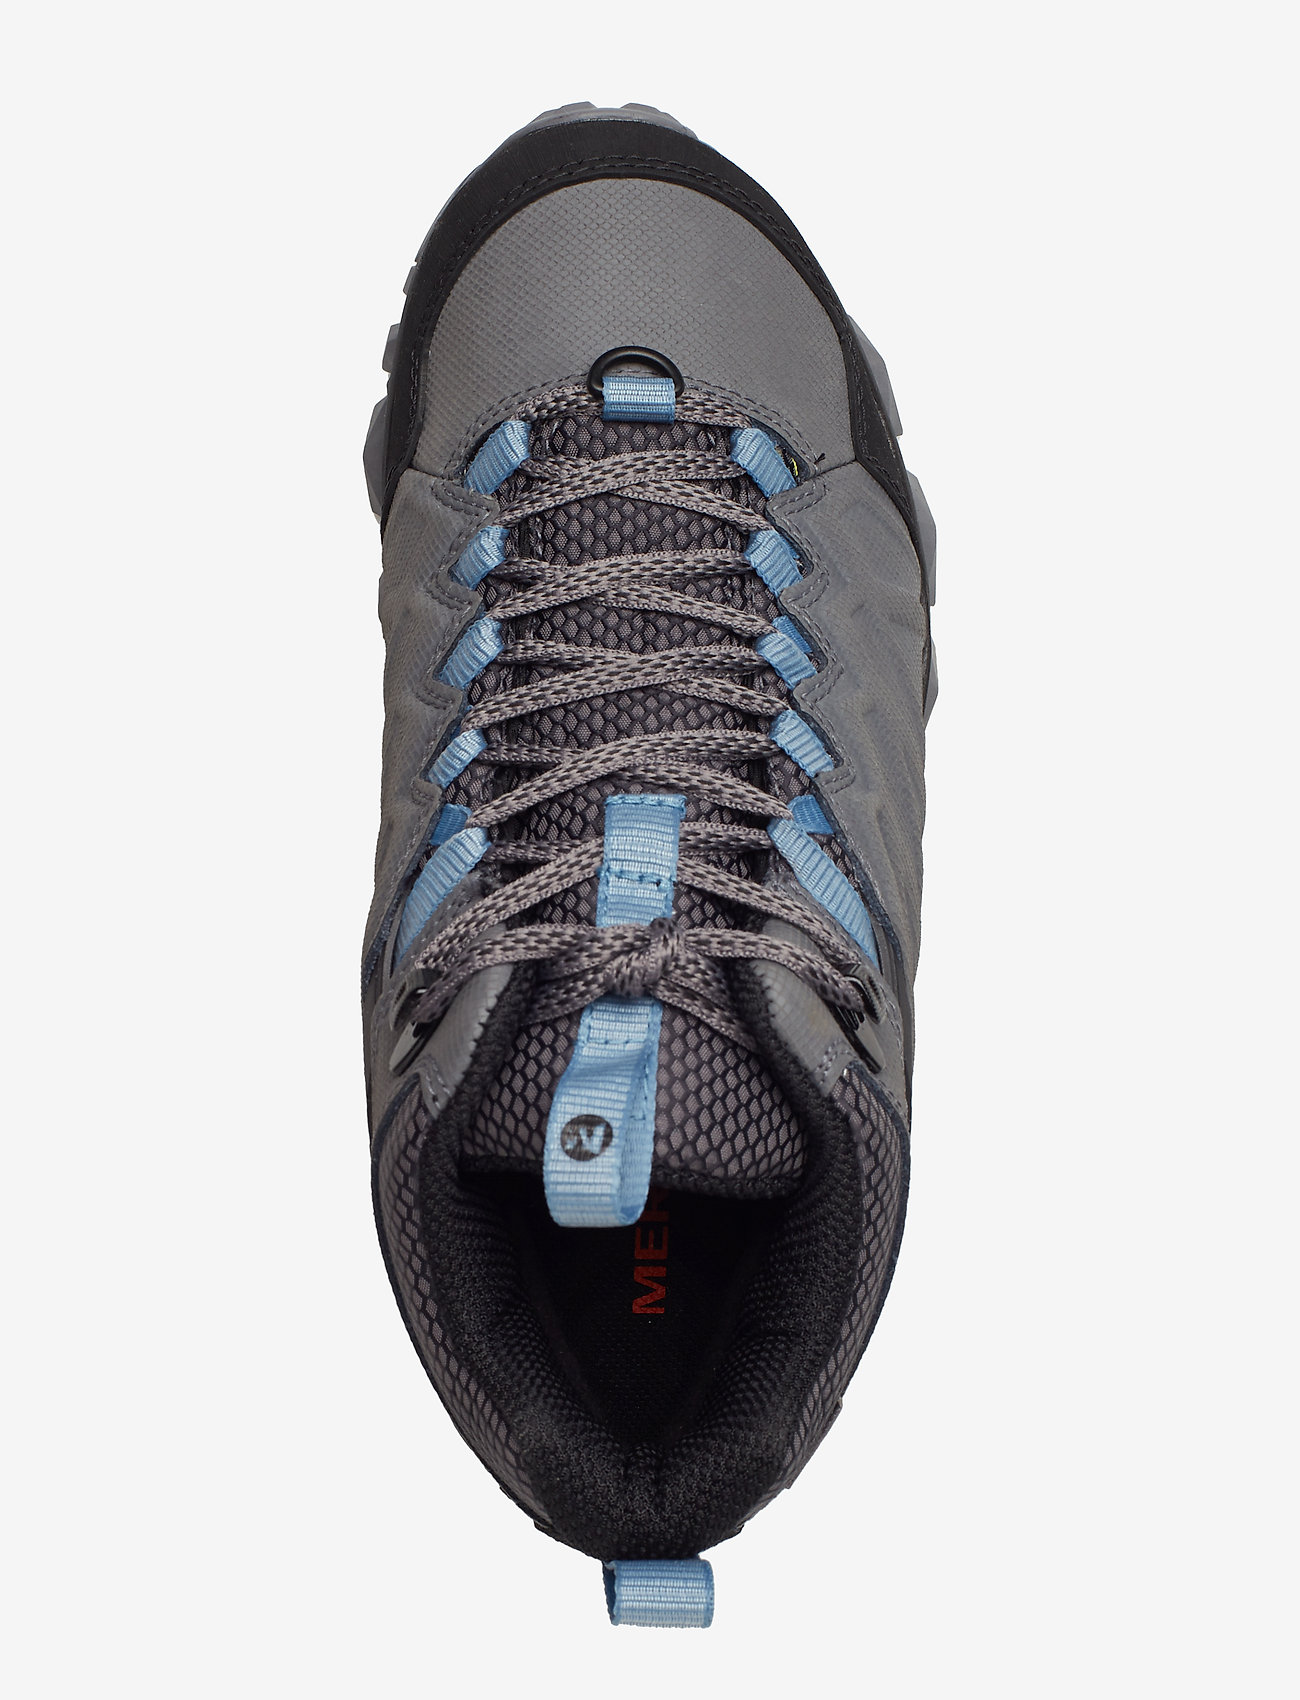 Thermo Freeze Mid Wtp (Black) - Merrell